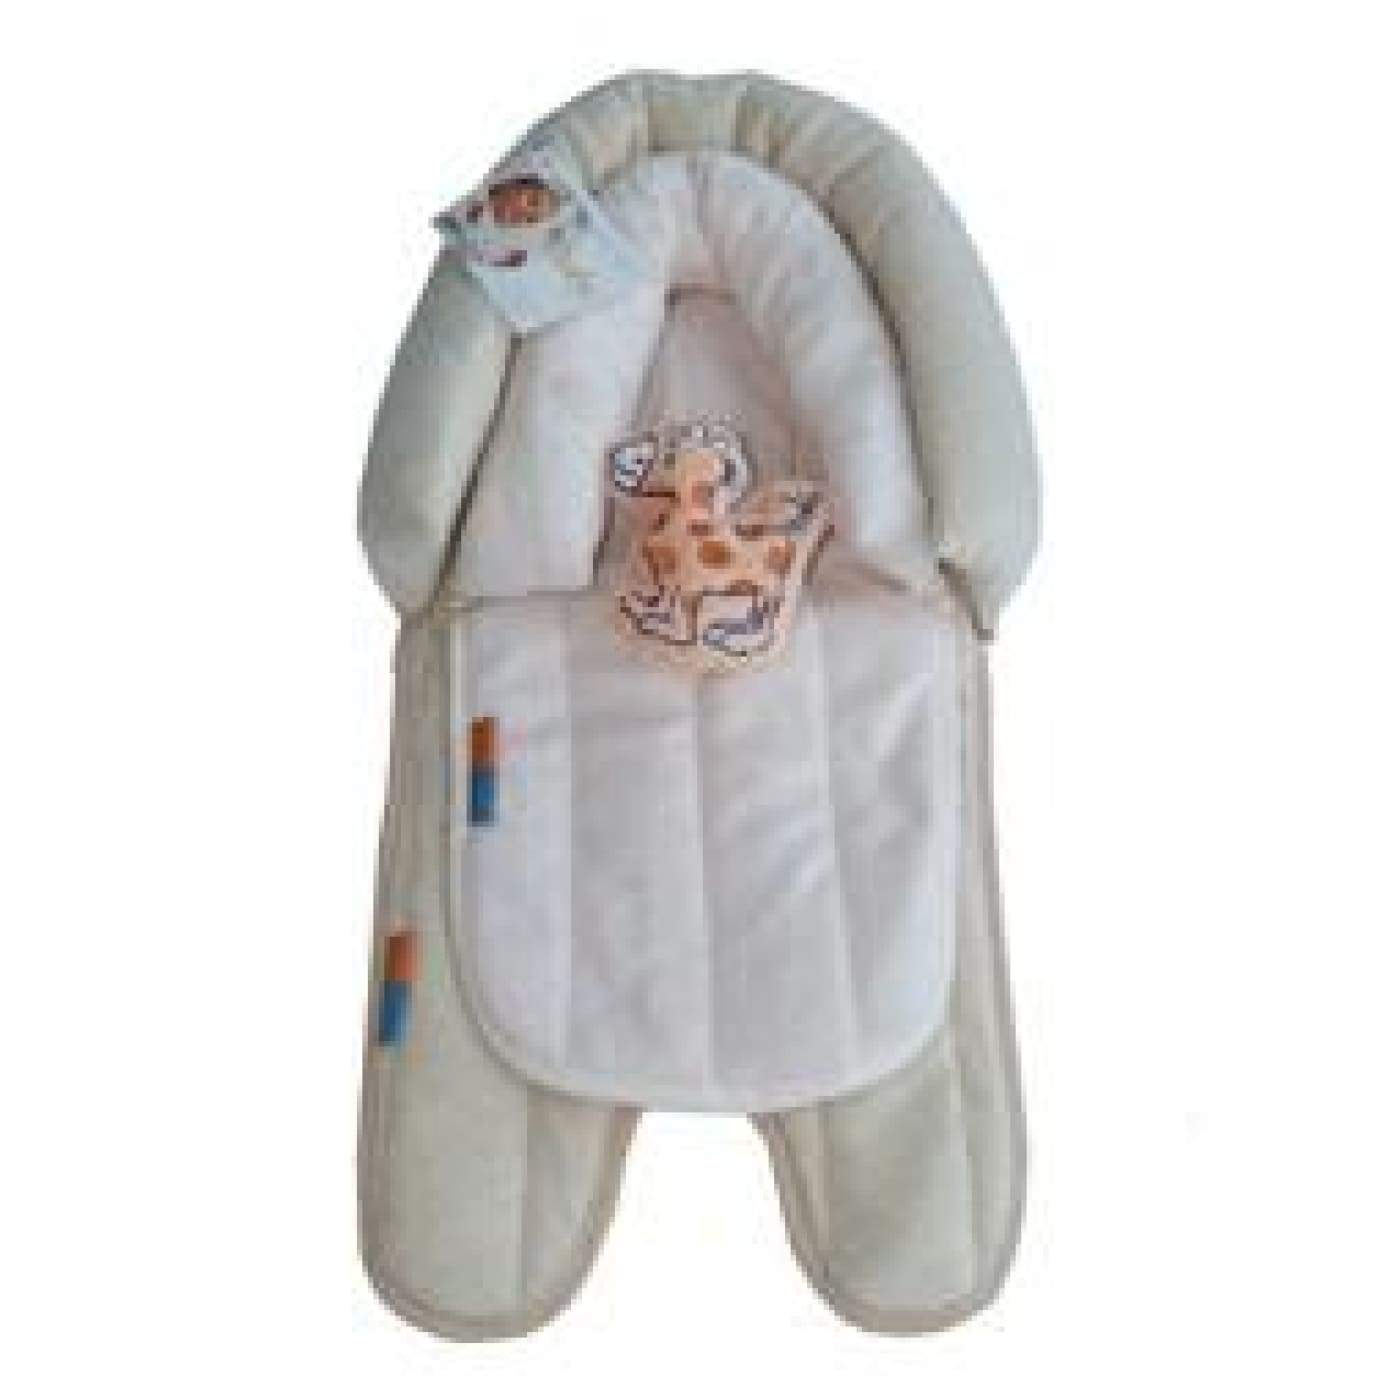 Babyhood 2 in 1 Head Support - Latte/Cream - PRAMS & STROLLERS - HEAD SUPPORTS